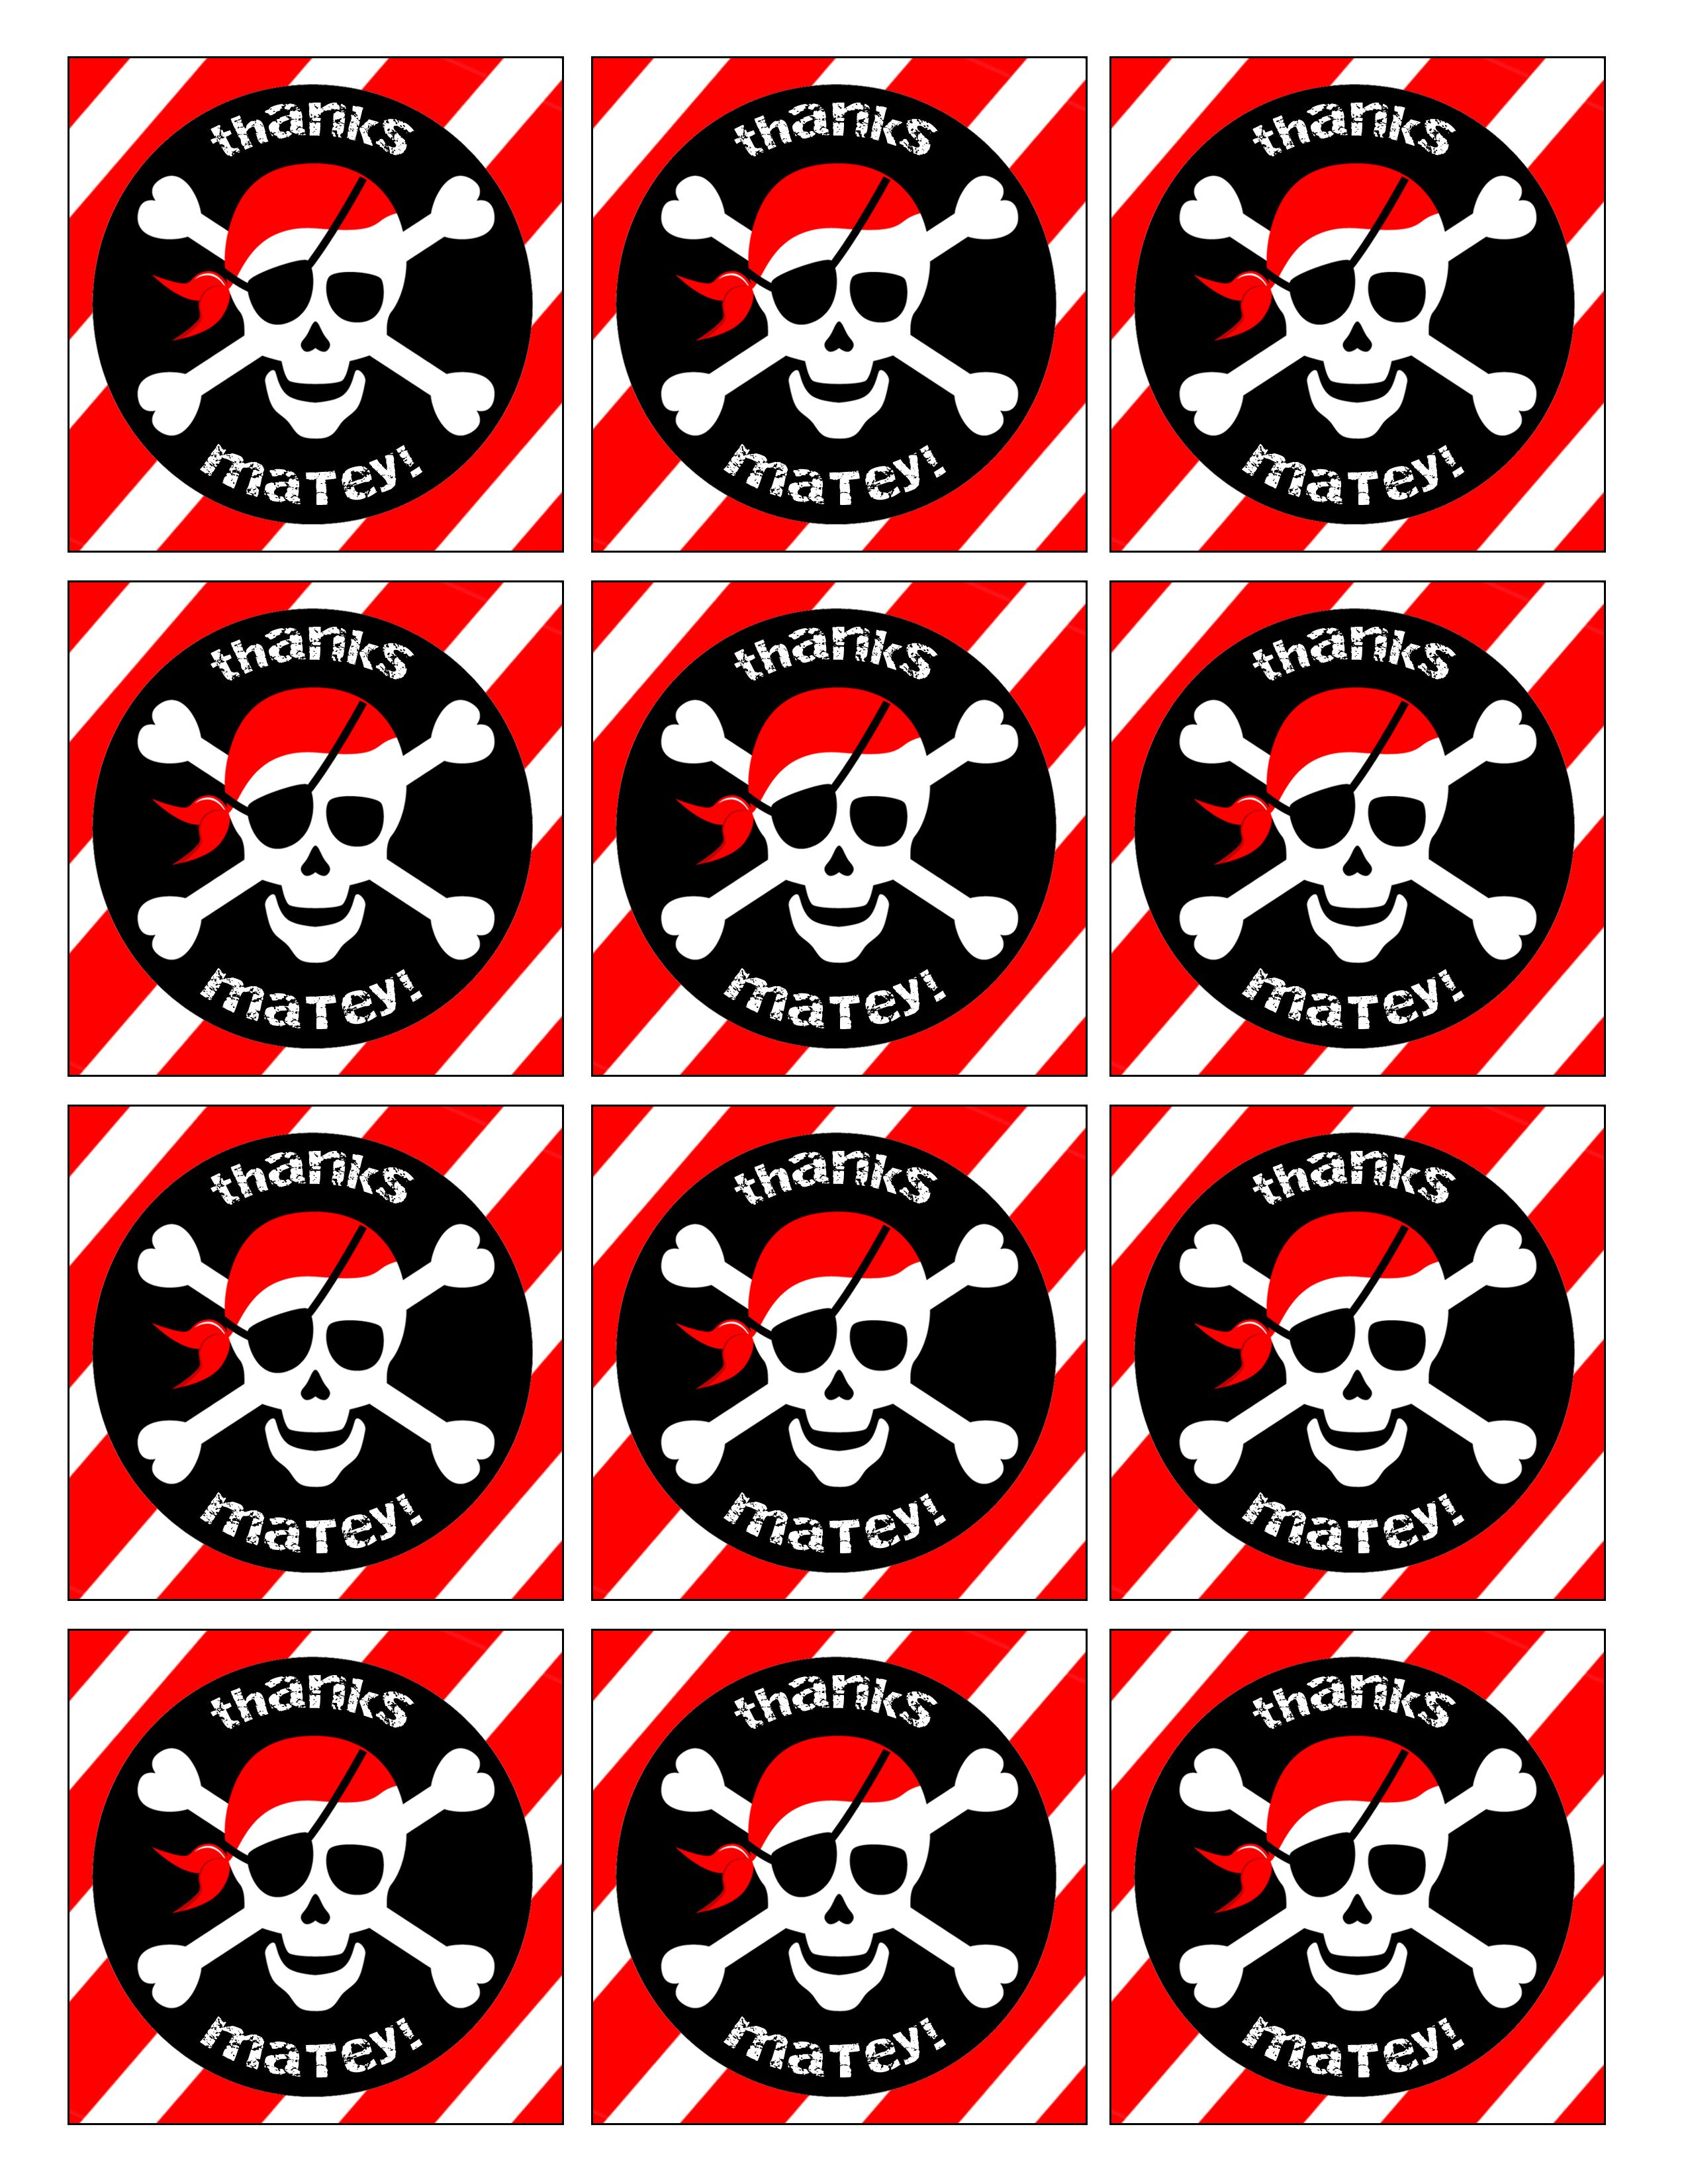 Pirate Birthday Party With Free Printables Pirate Birthday